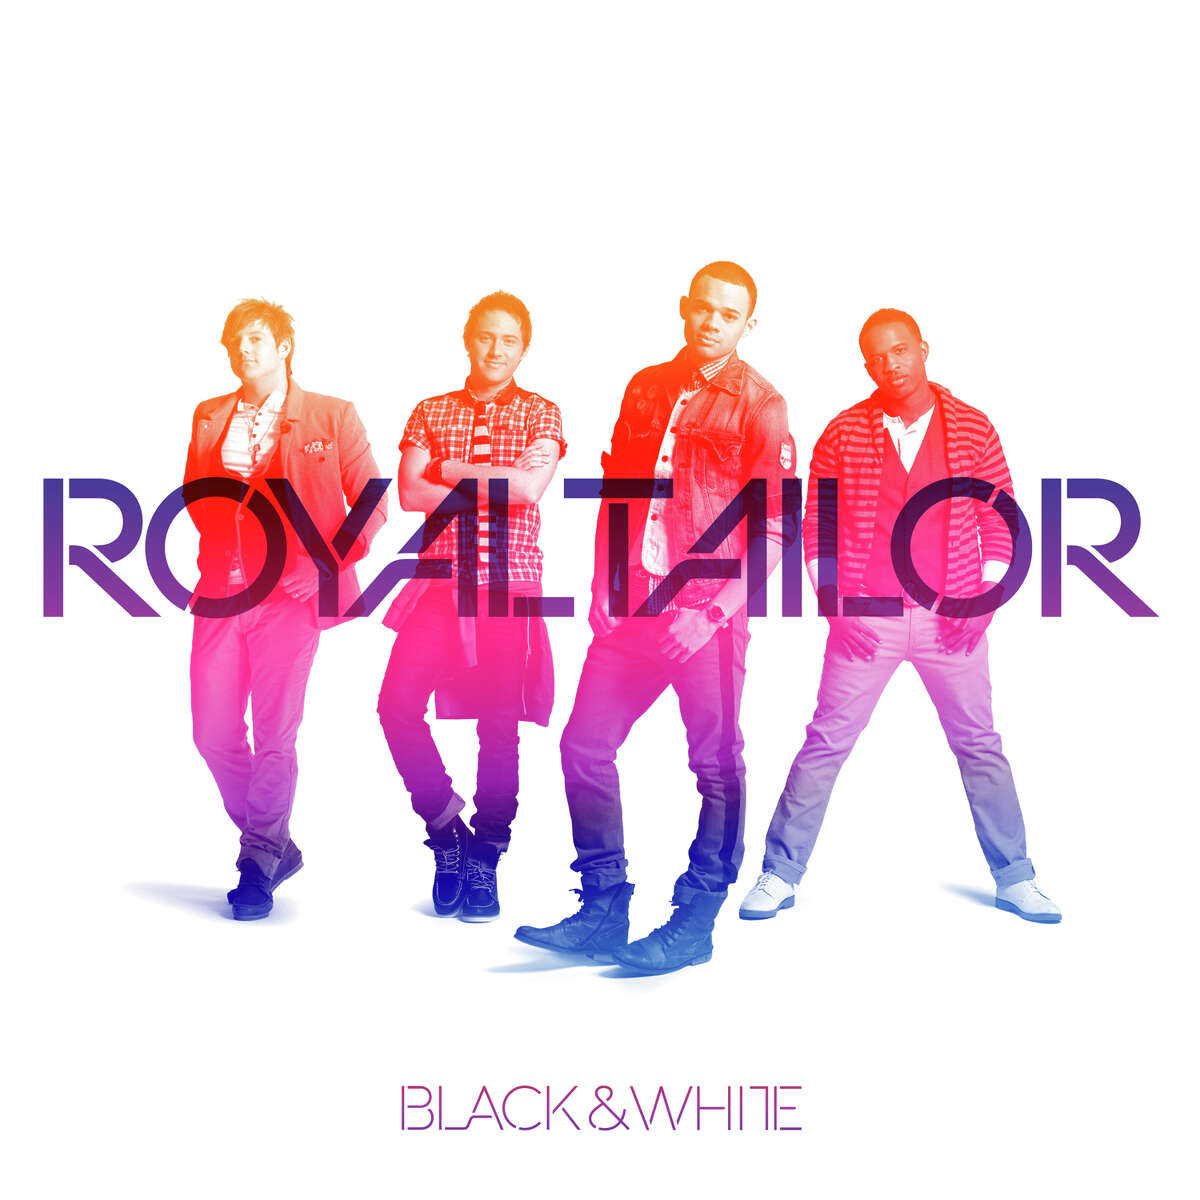 CD COVER - Christian contemporary band Royal Tailor - BLACK & WHITE Credit: Provident Label Group